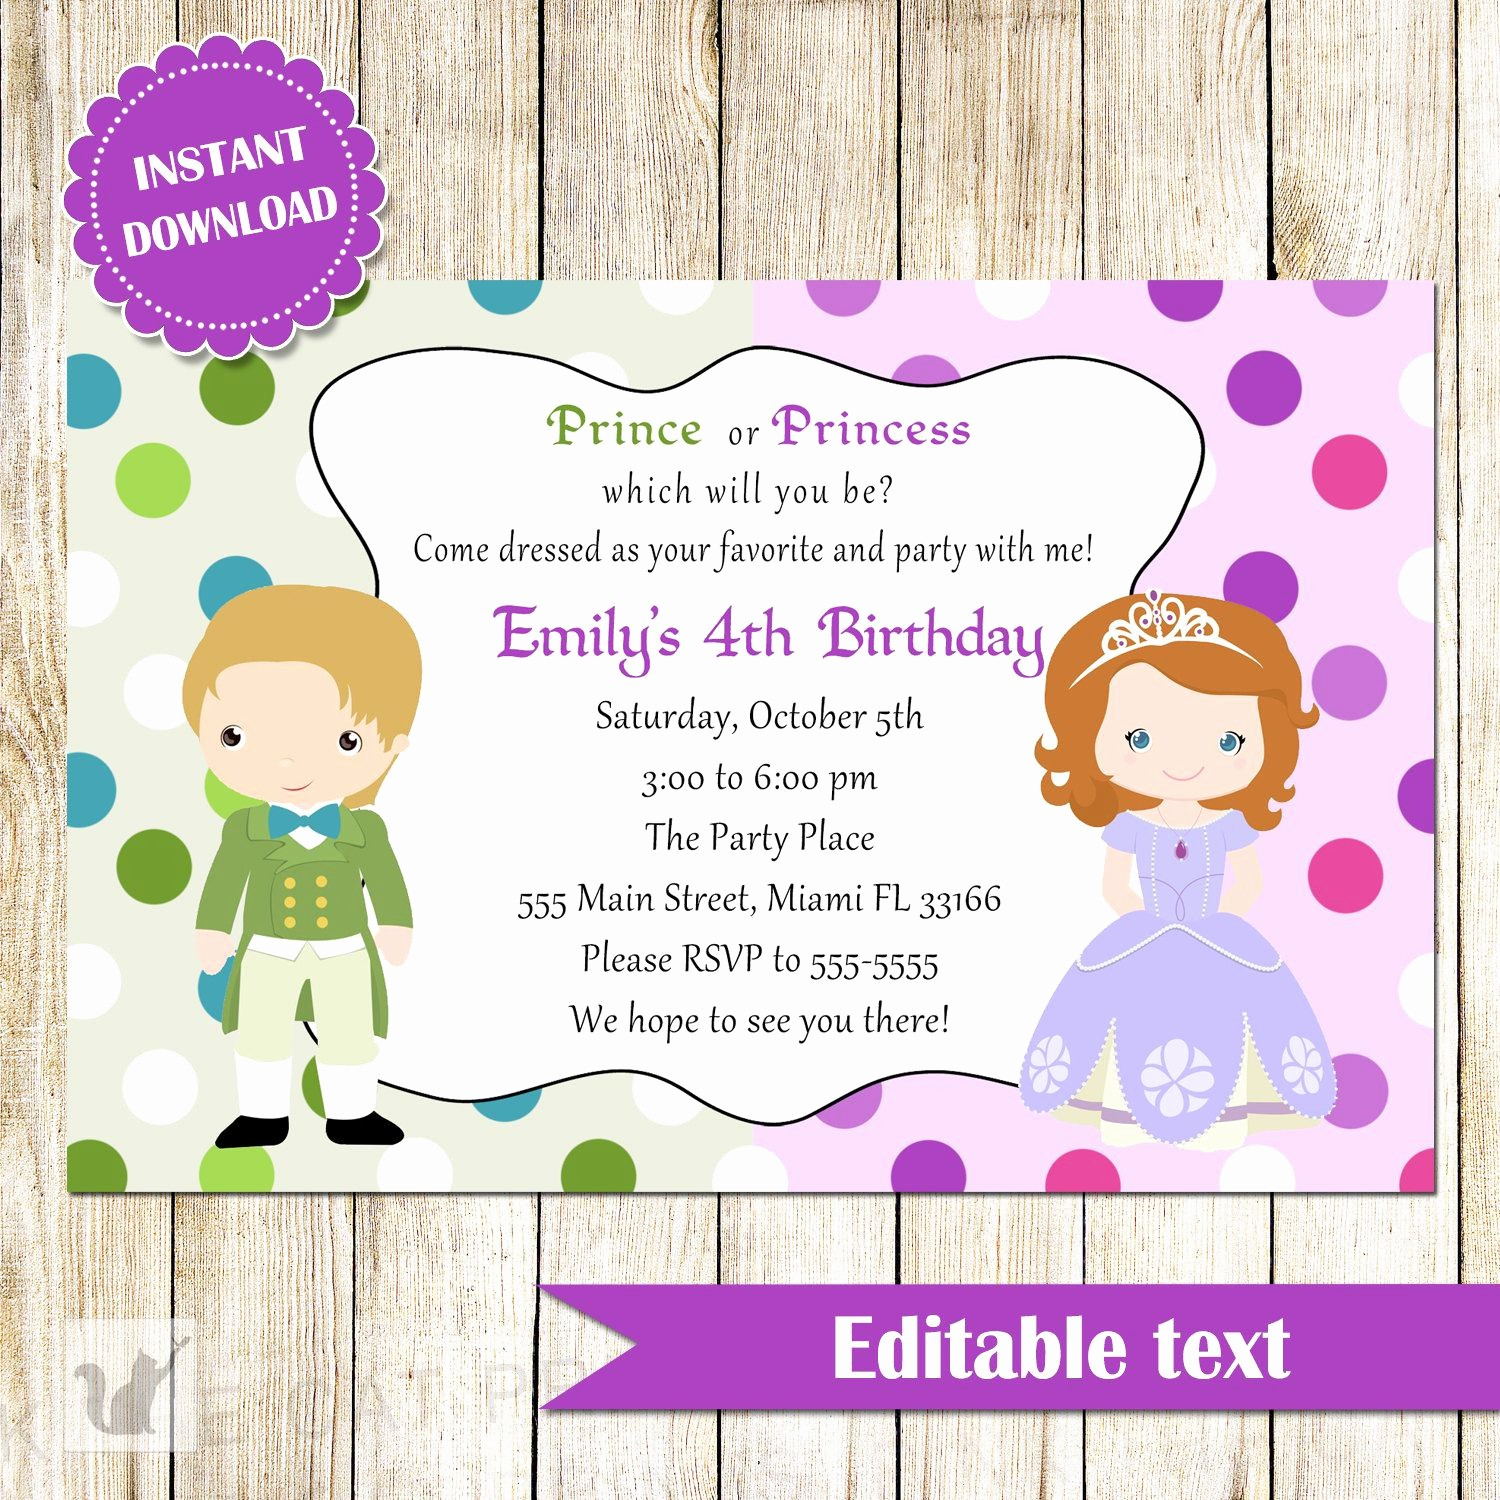 Kids Birthday Party Invites Templates Awesome Childrens Birthday Party Invites toddler Birthday Party